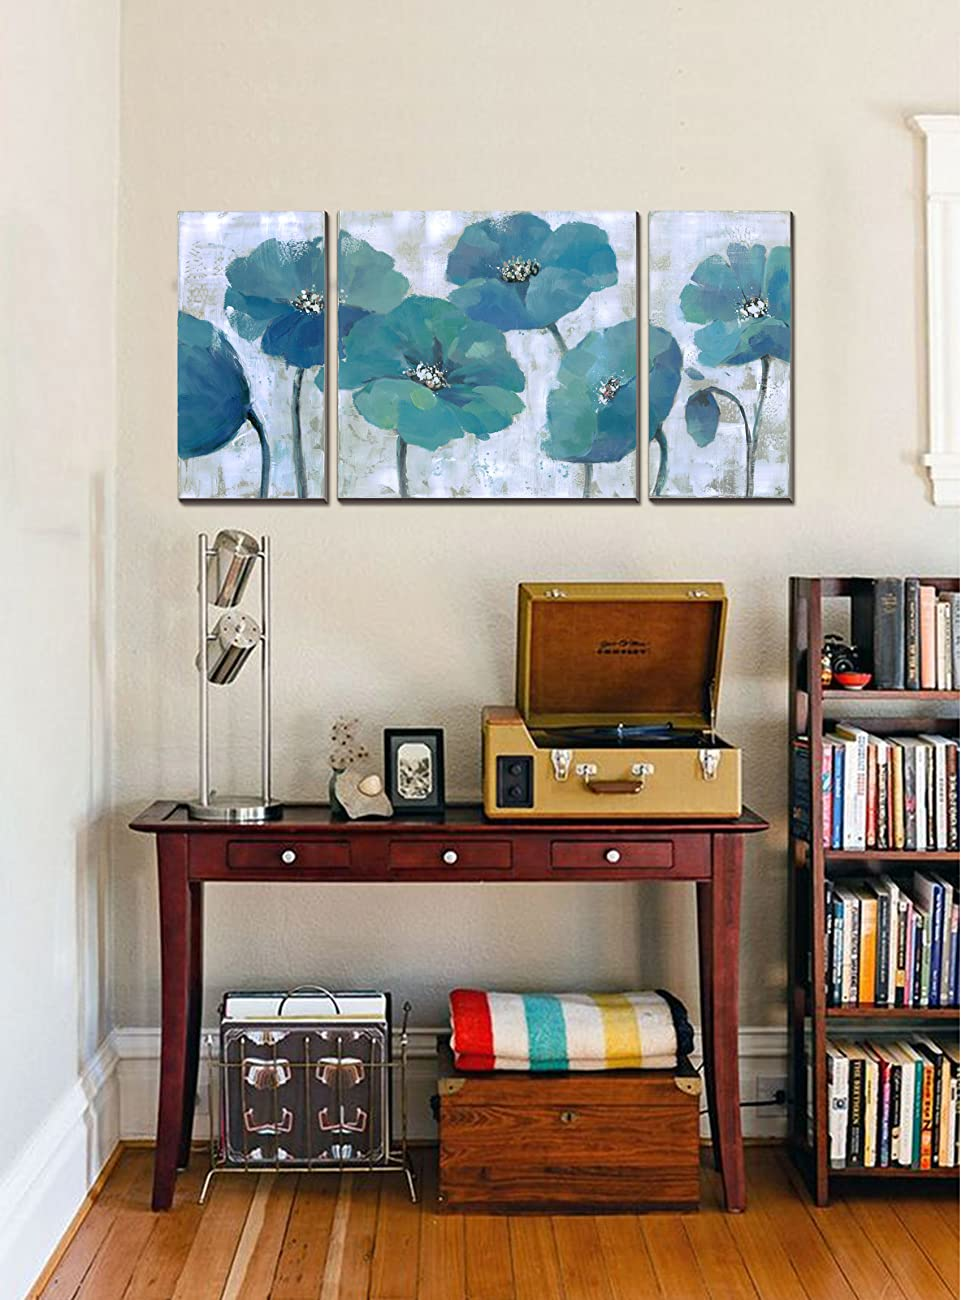 modern artwork for living room. cubism floral paintings on canvas 3 Panels Modern Prints Artwork Blue  Abstract Wall Decor Stretched Ready to hang Amazon com